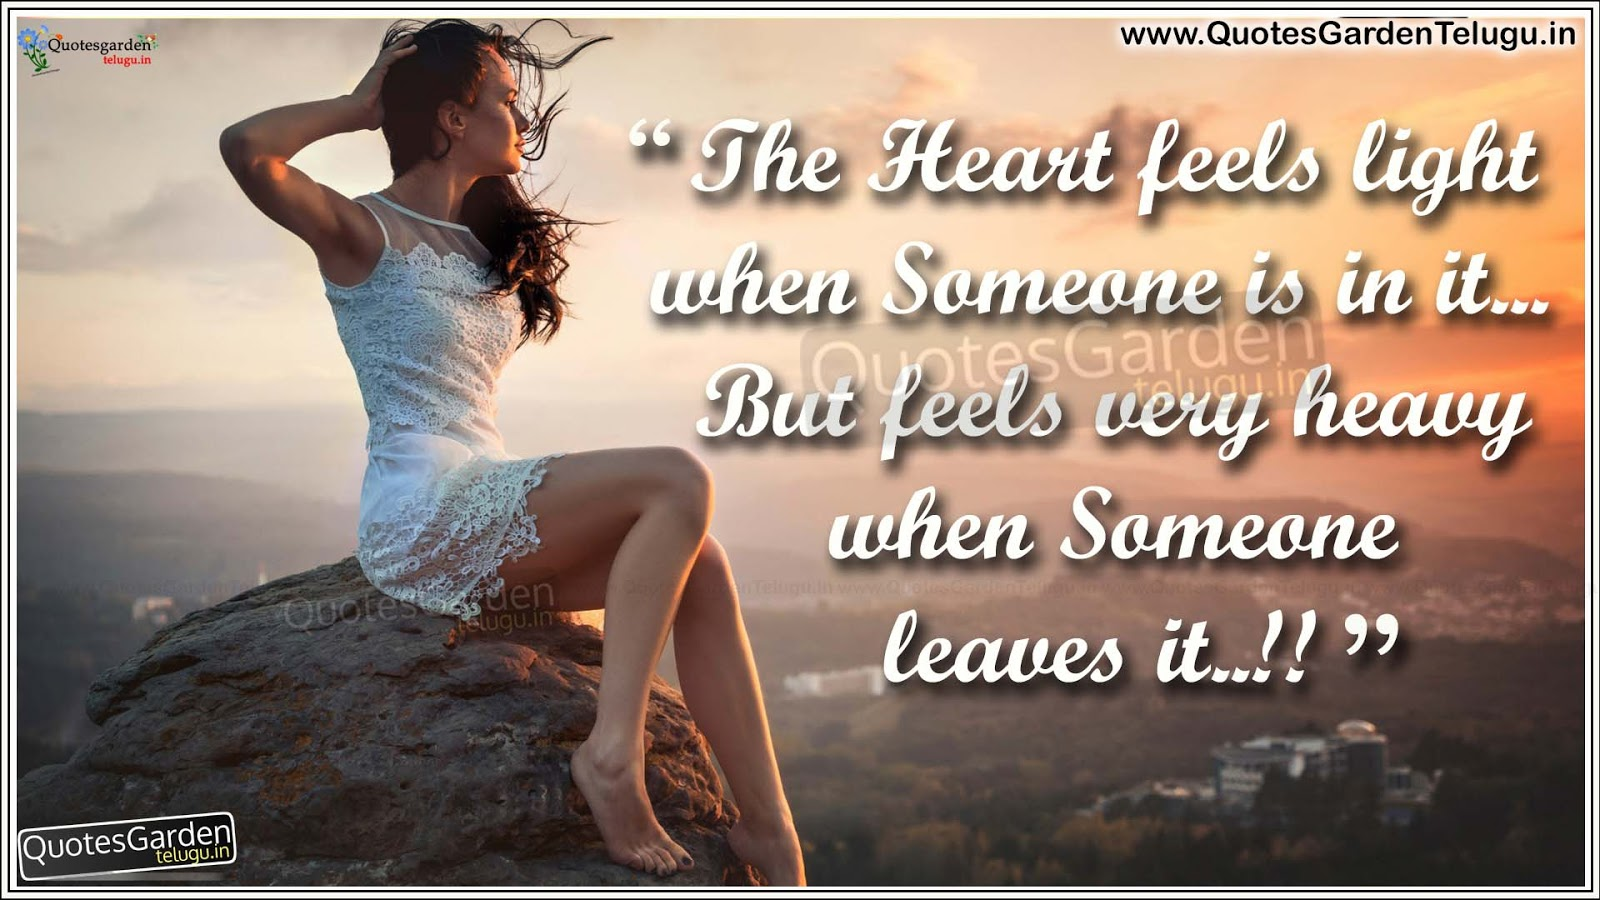 Love Quotes Wallpaper In English : Heart touching Love Quotes HD love wallpapers QUOTES GARDEN TELUGU Telugu Quotes English ...